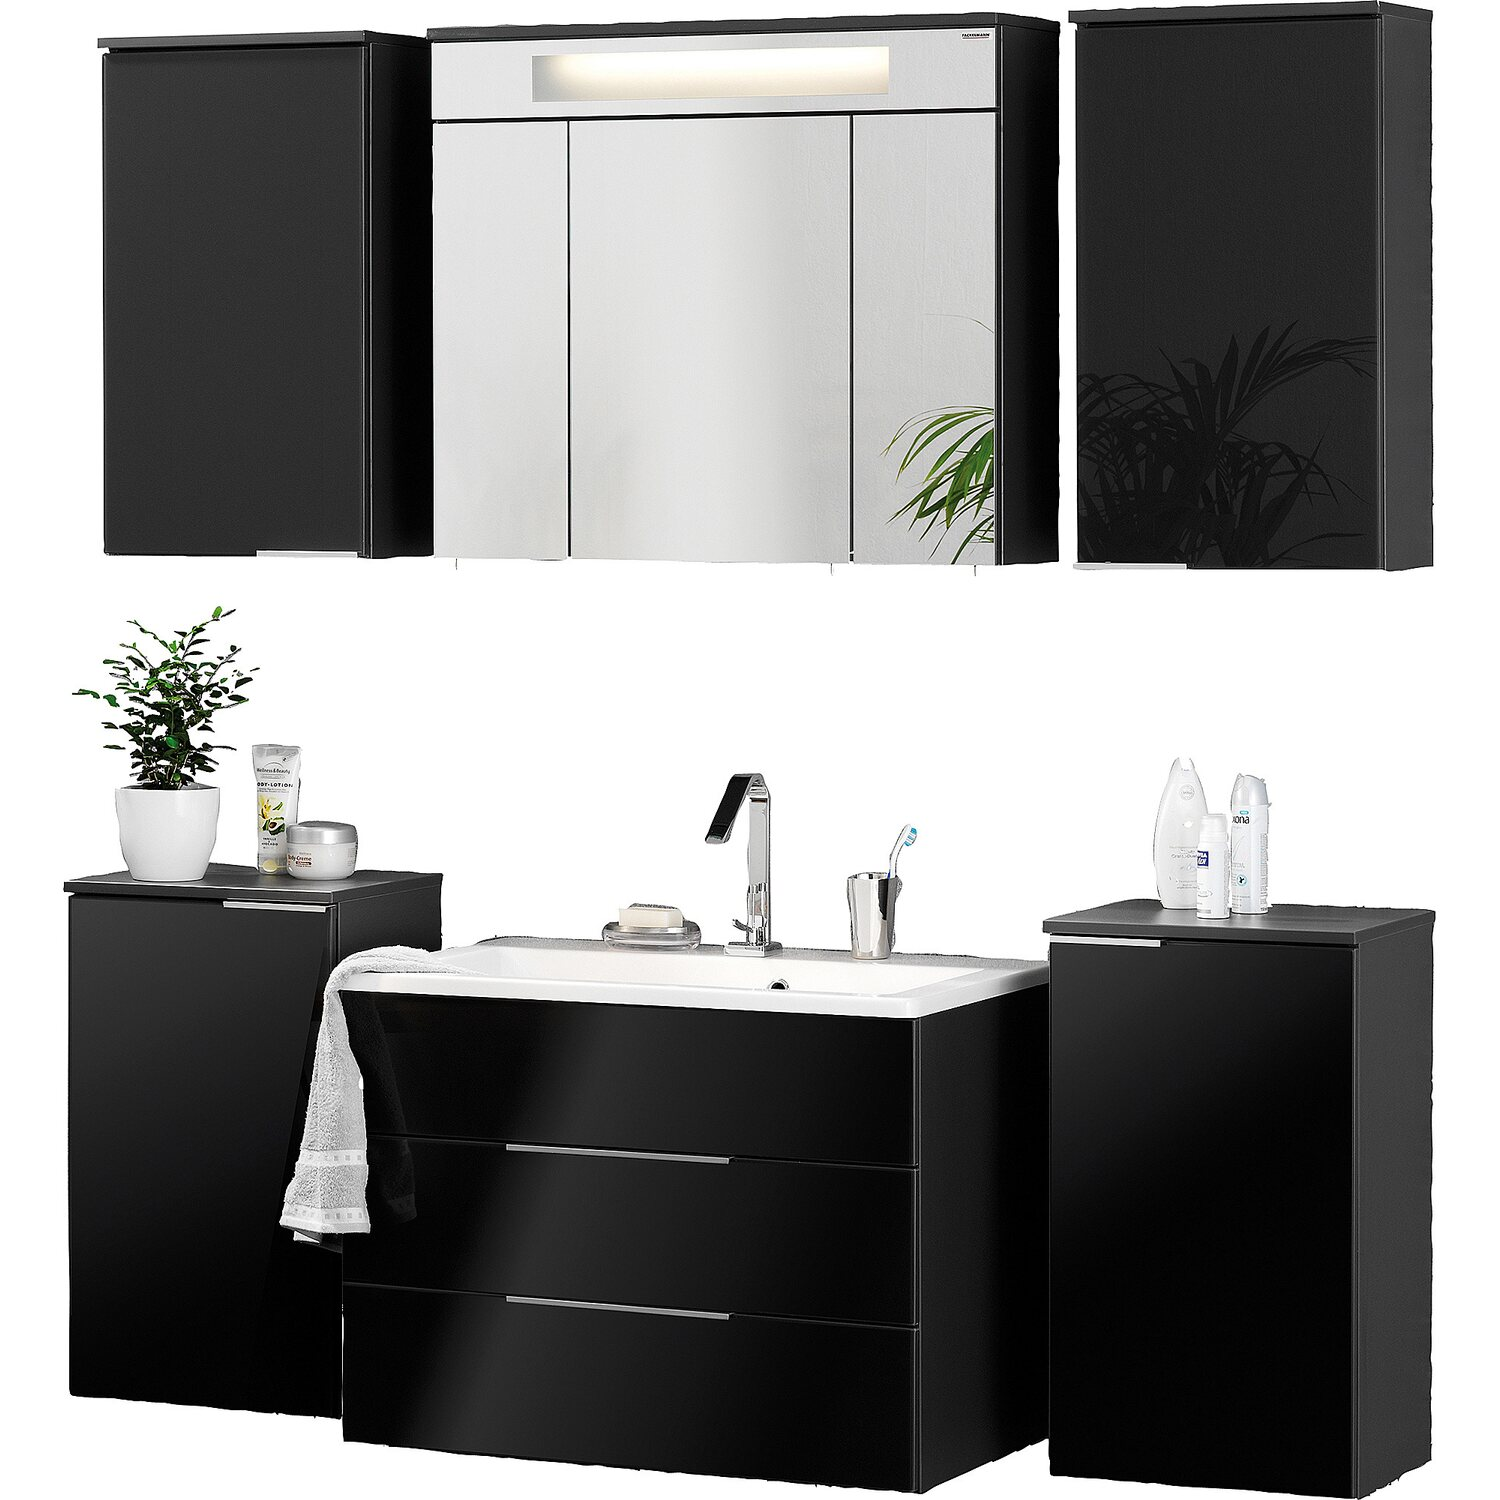 fackelmann badm bel set eek a kara anthrazit 7 teilig. Black Bedroom Furniture Sets. Home Design Ideas